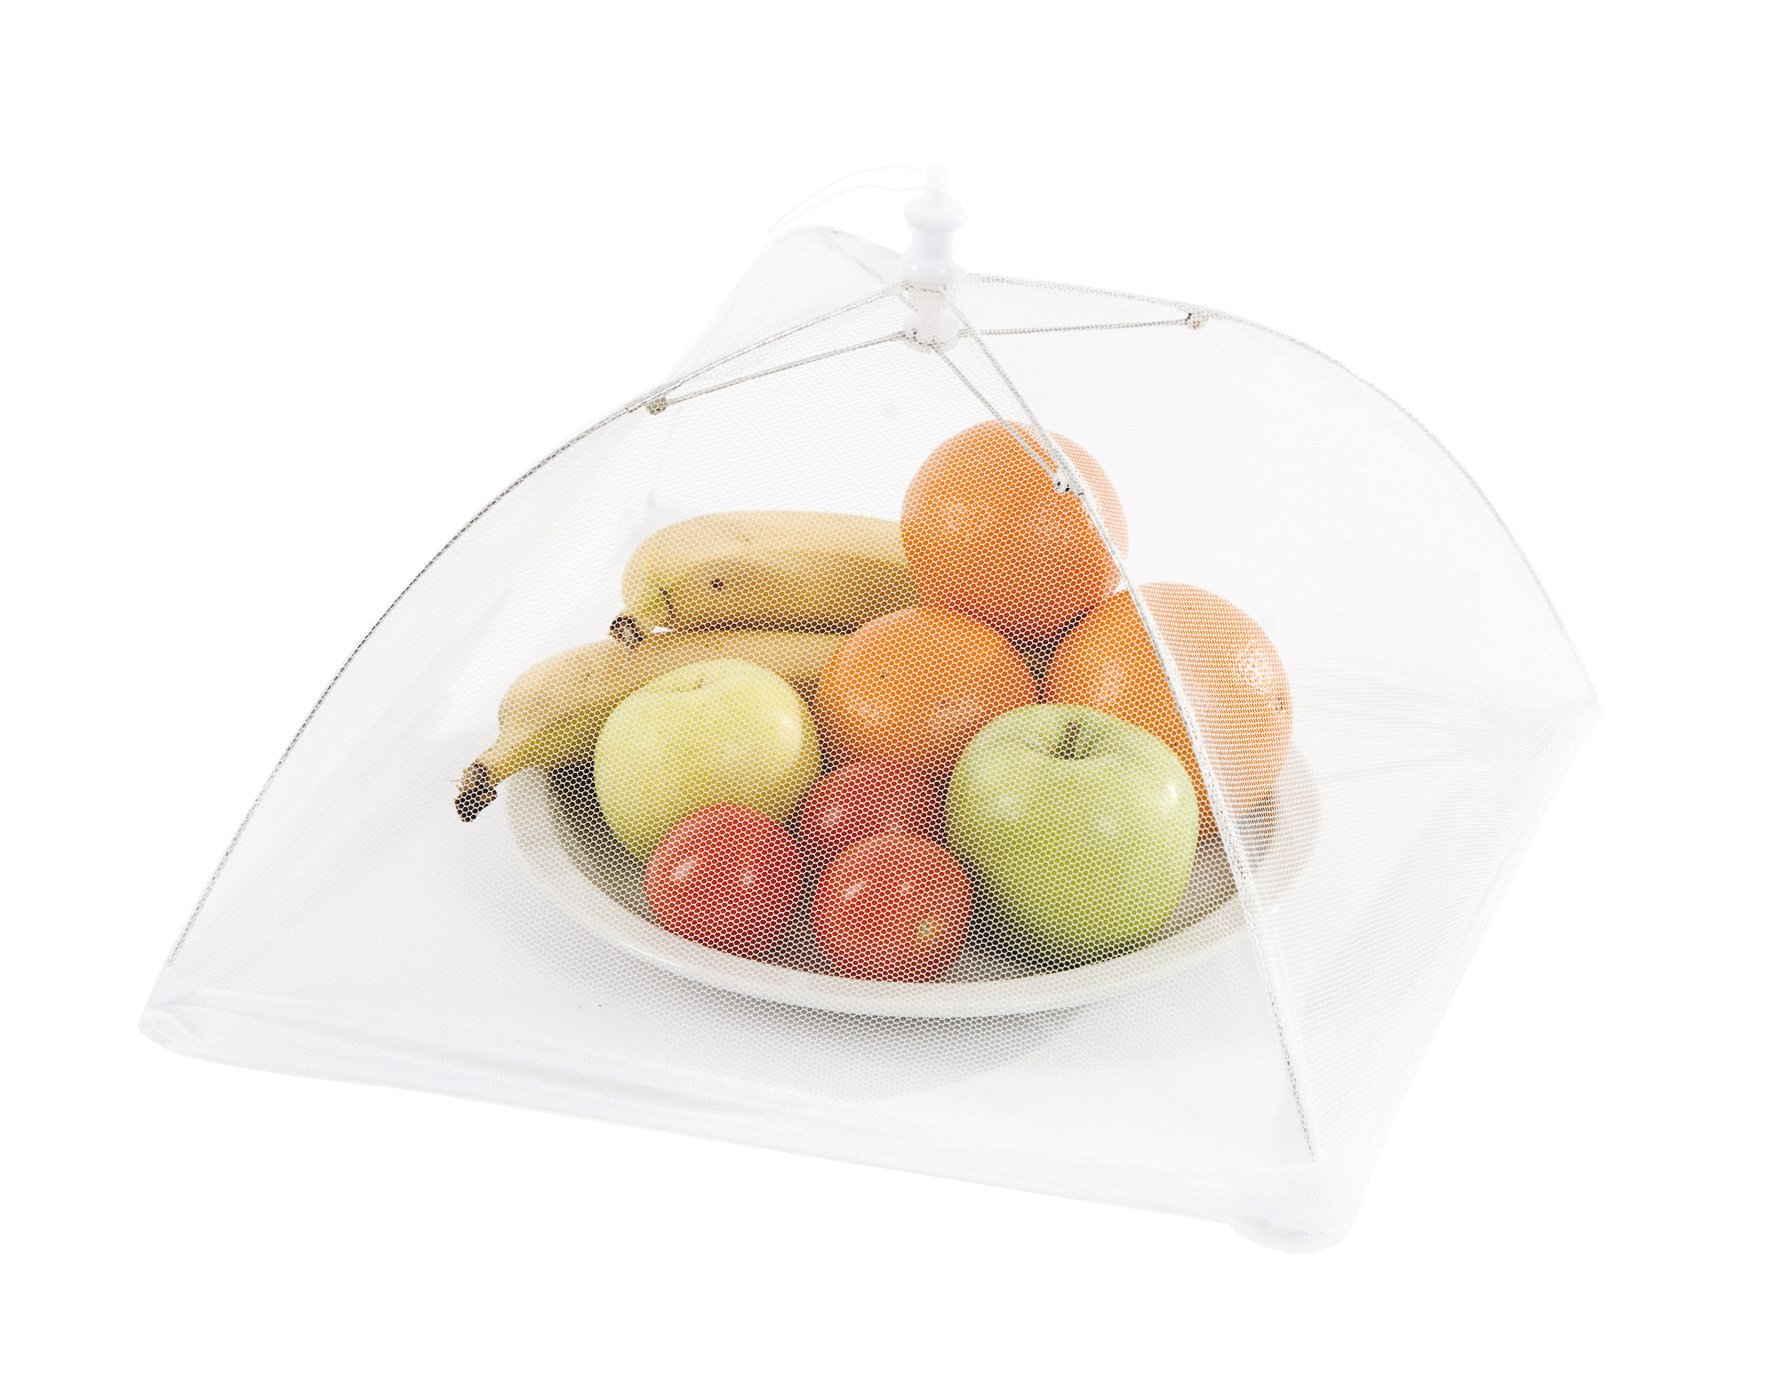 Bo-Camp - Food Cover - Square - Foldable - 33x33cm